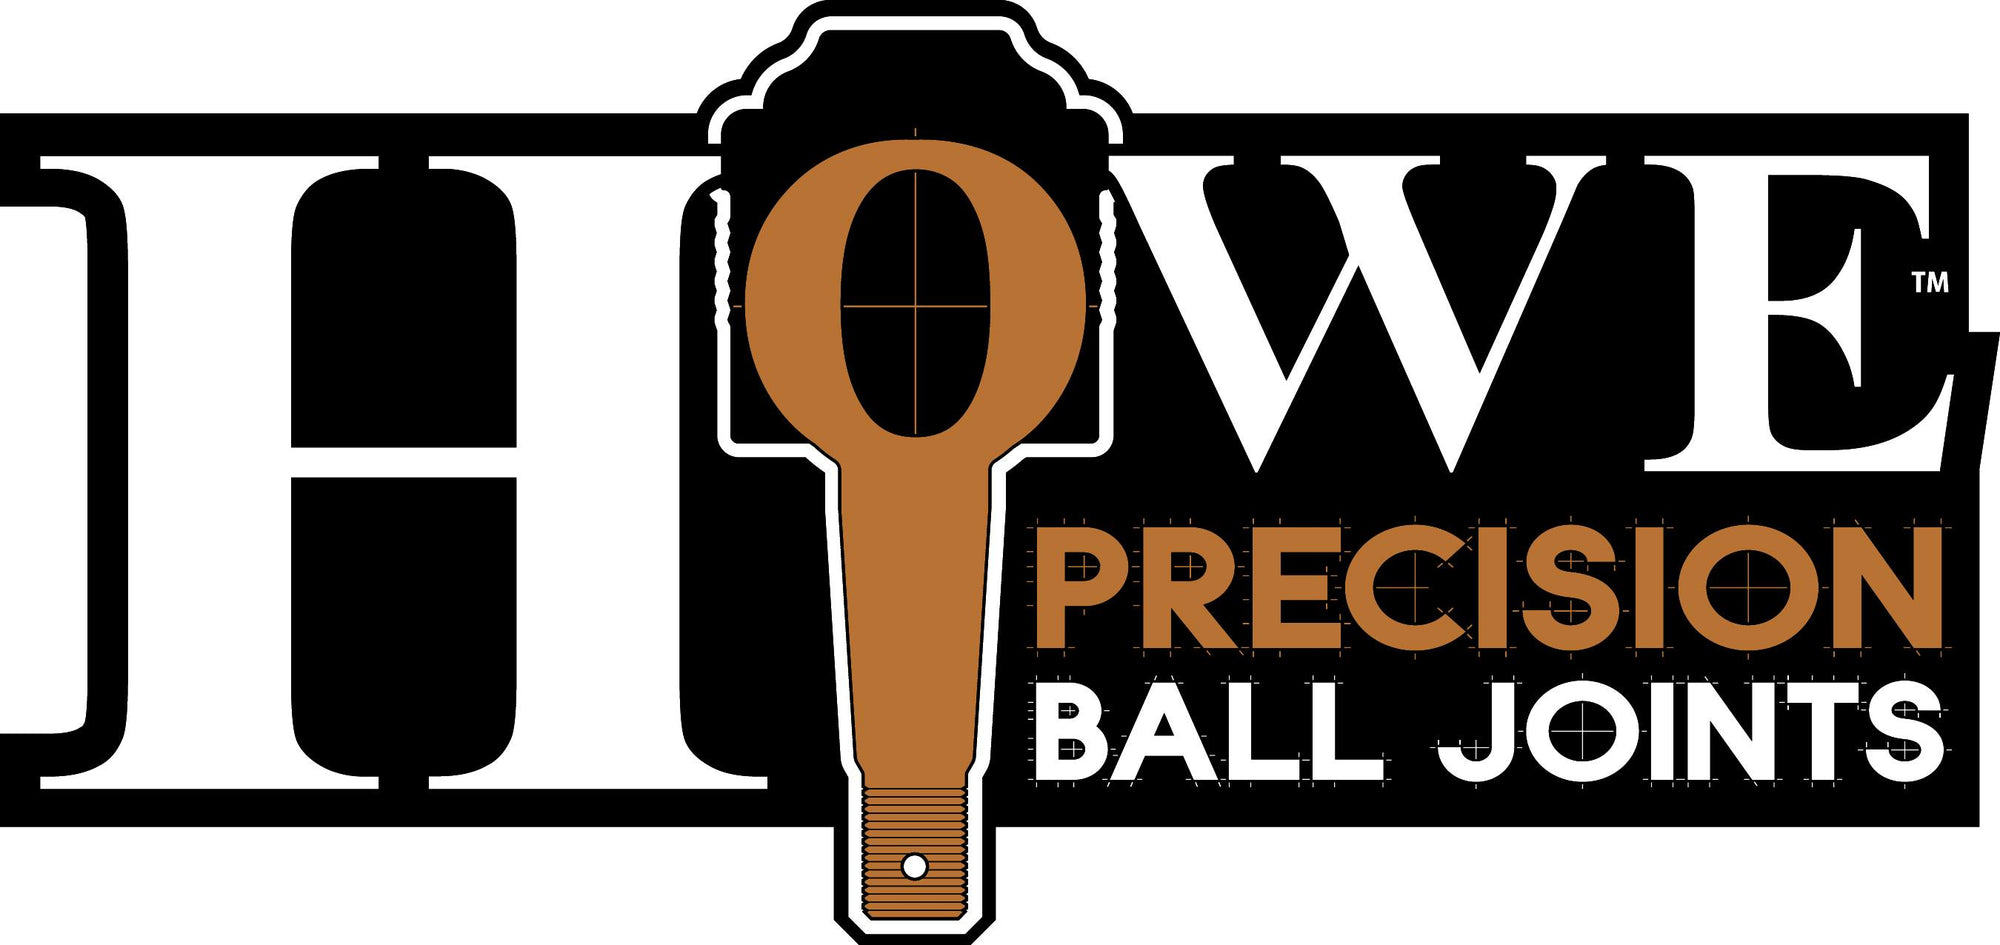 Updated Logo for Howe Ball Joints